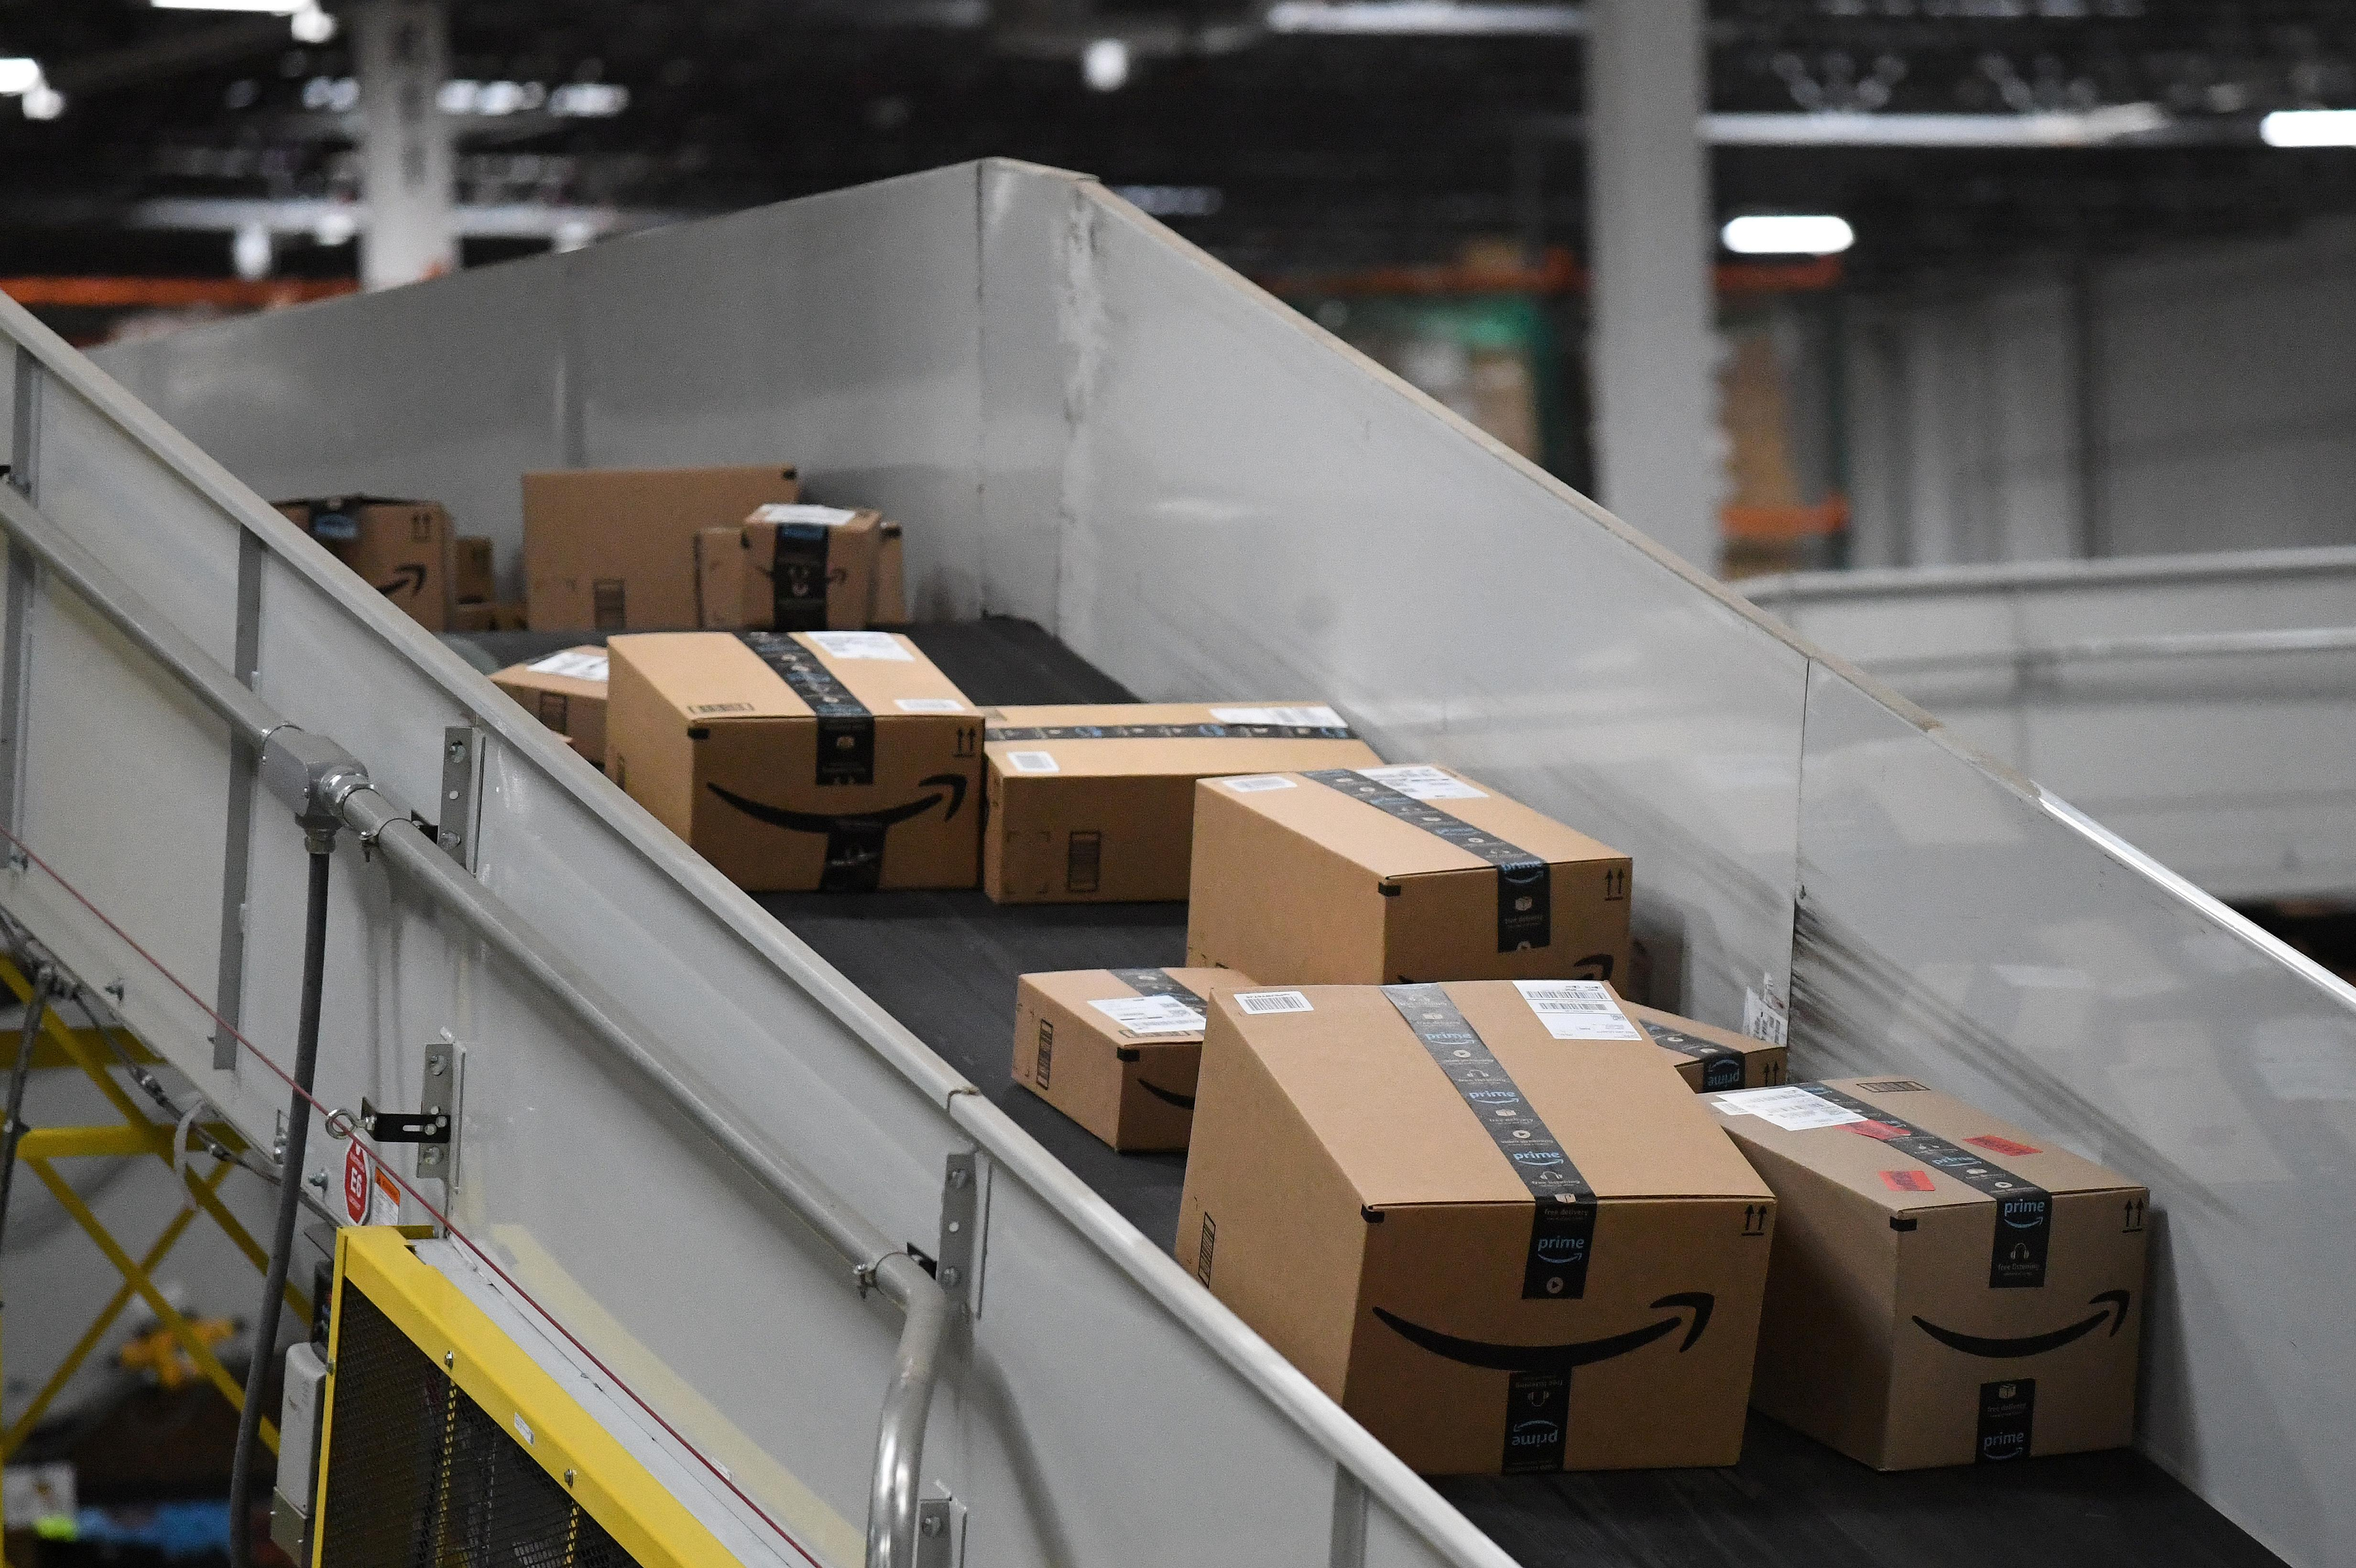 Amazon dismisses idea automation will eliminate all its